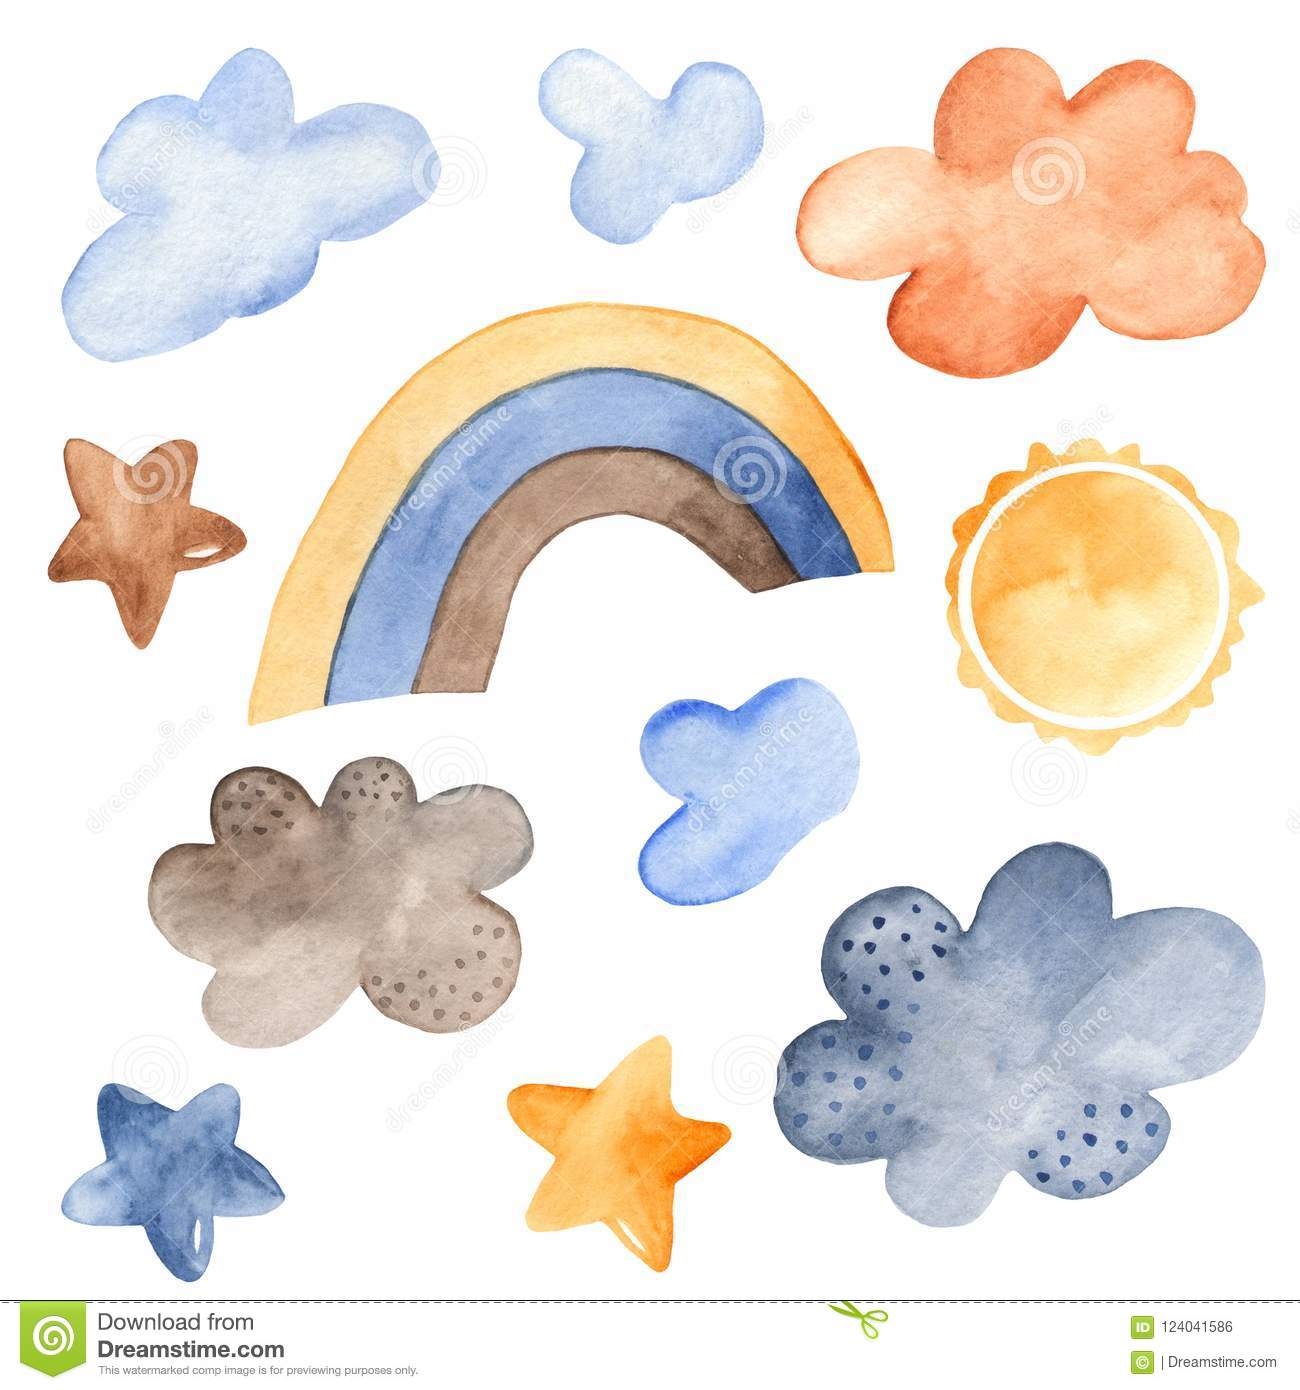 Watercolor set of weather forecast.